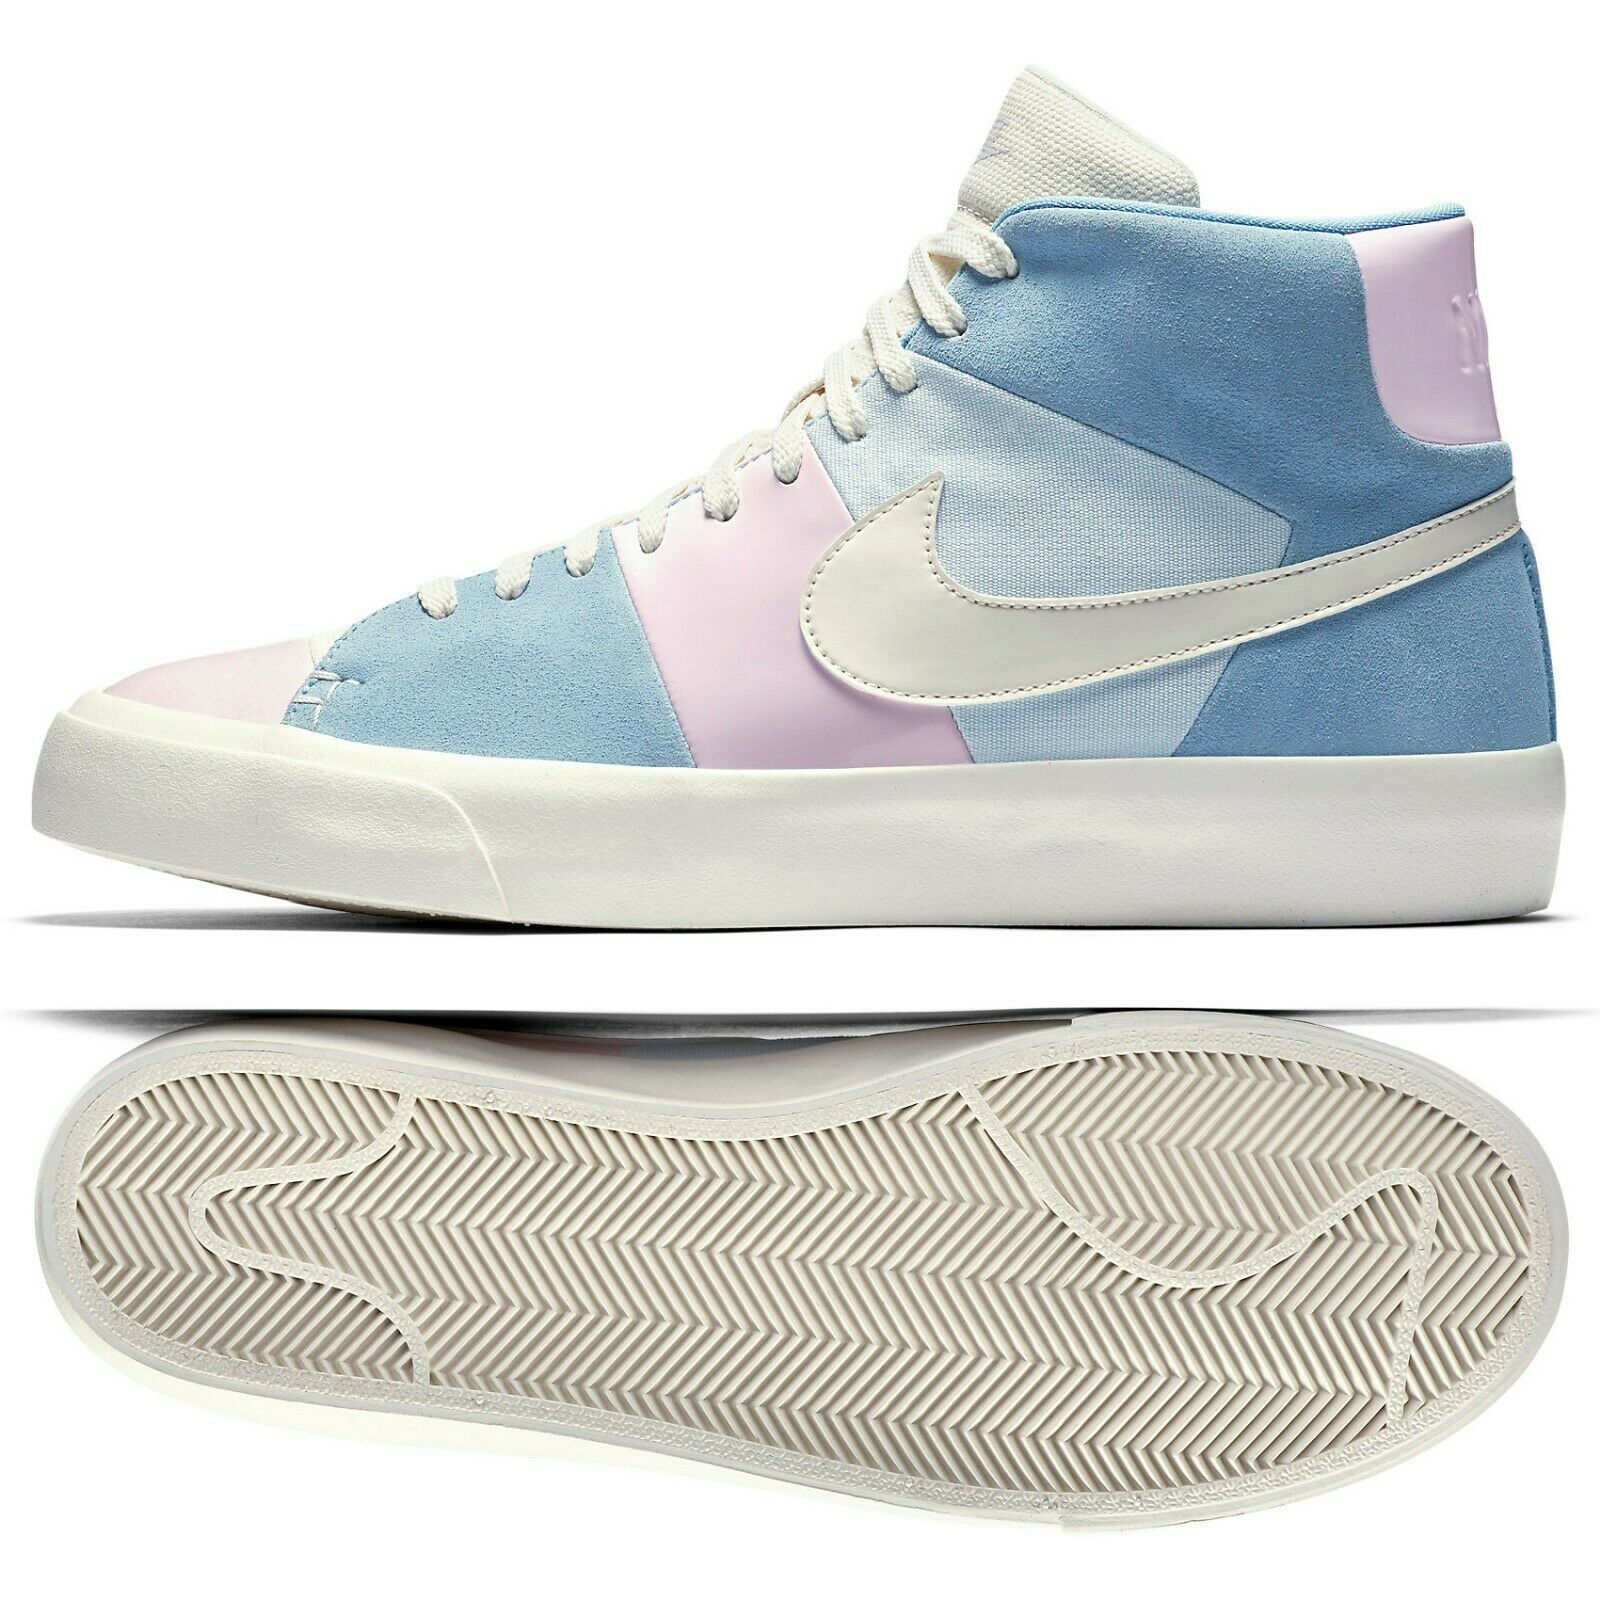 Nike Blazer Royal Easter QS AO2368-600 Arctic Pink Leche bluee Ice bluee Men shoes